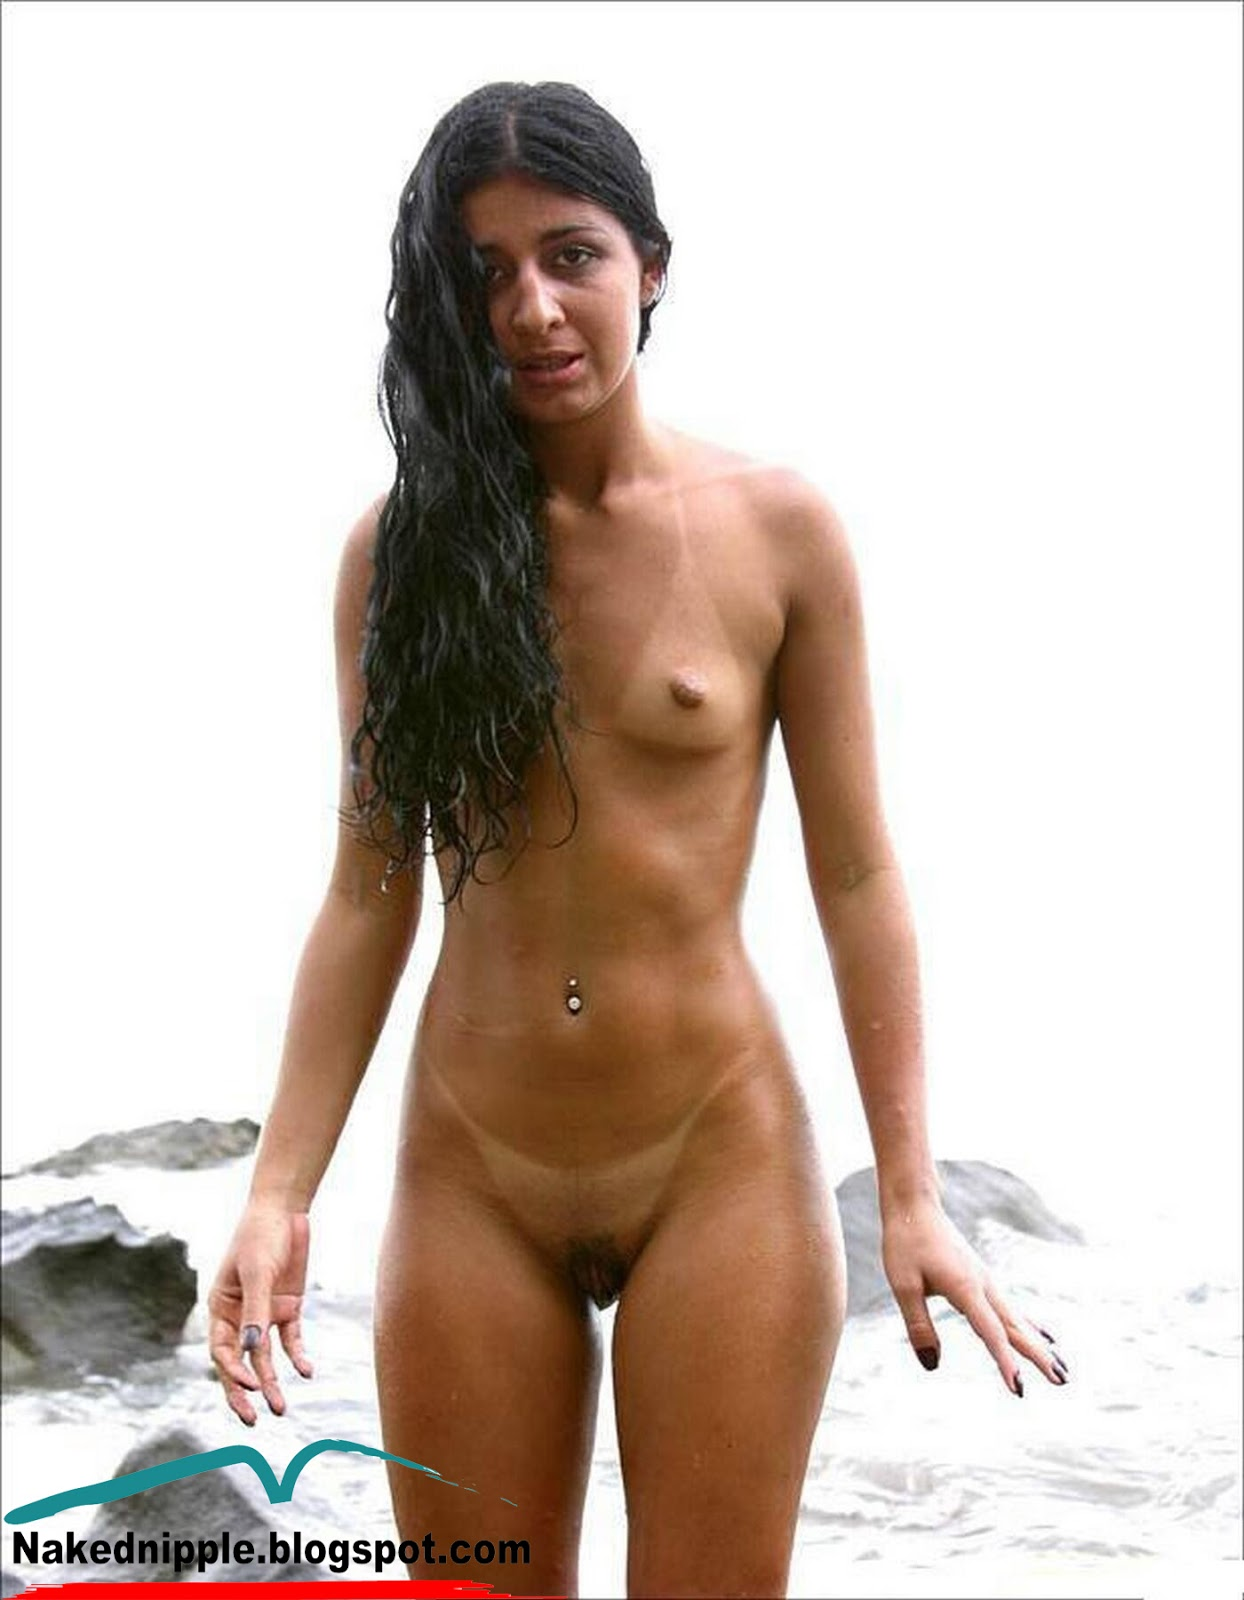 from Wesley desi young and fresh chicks nud